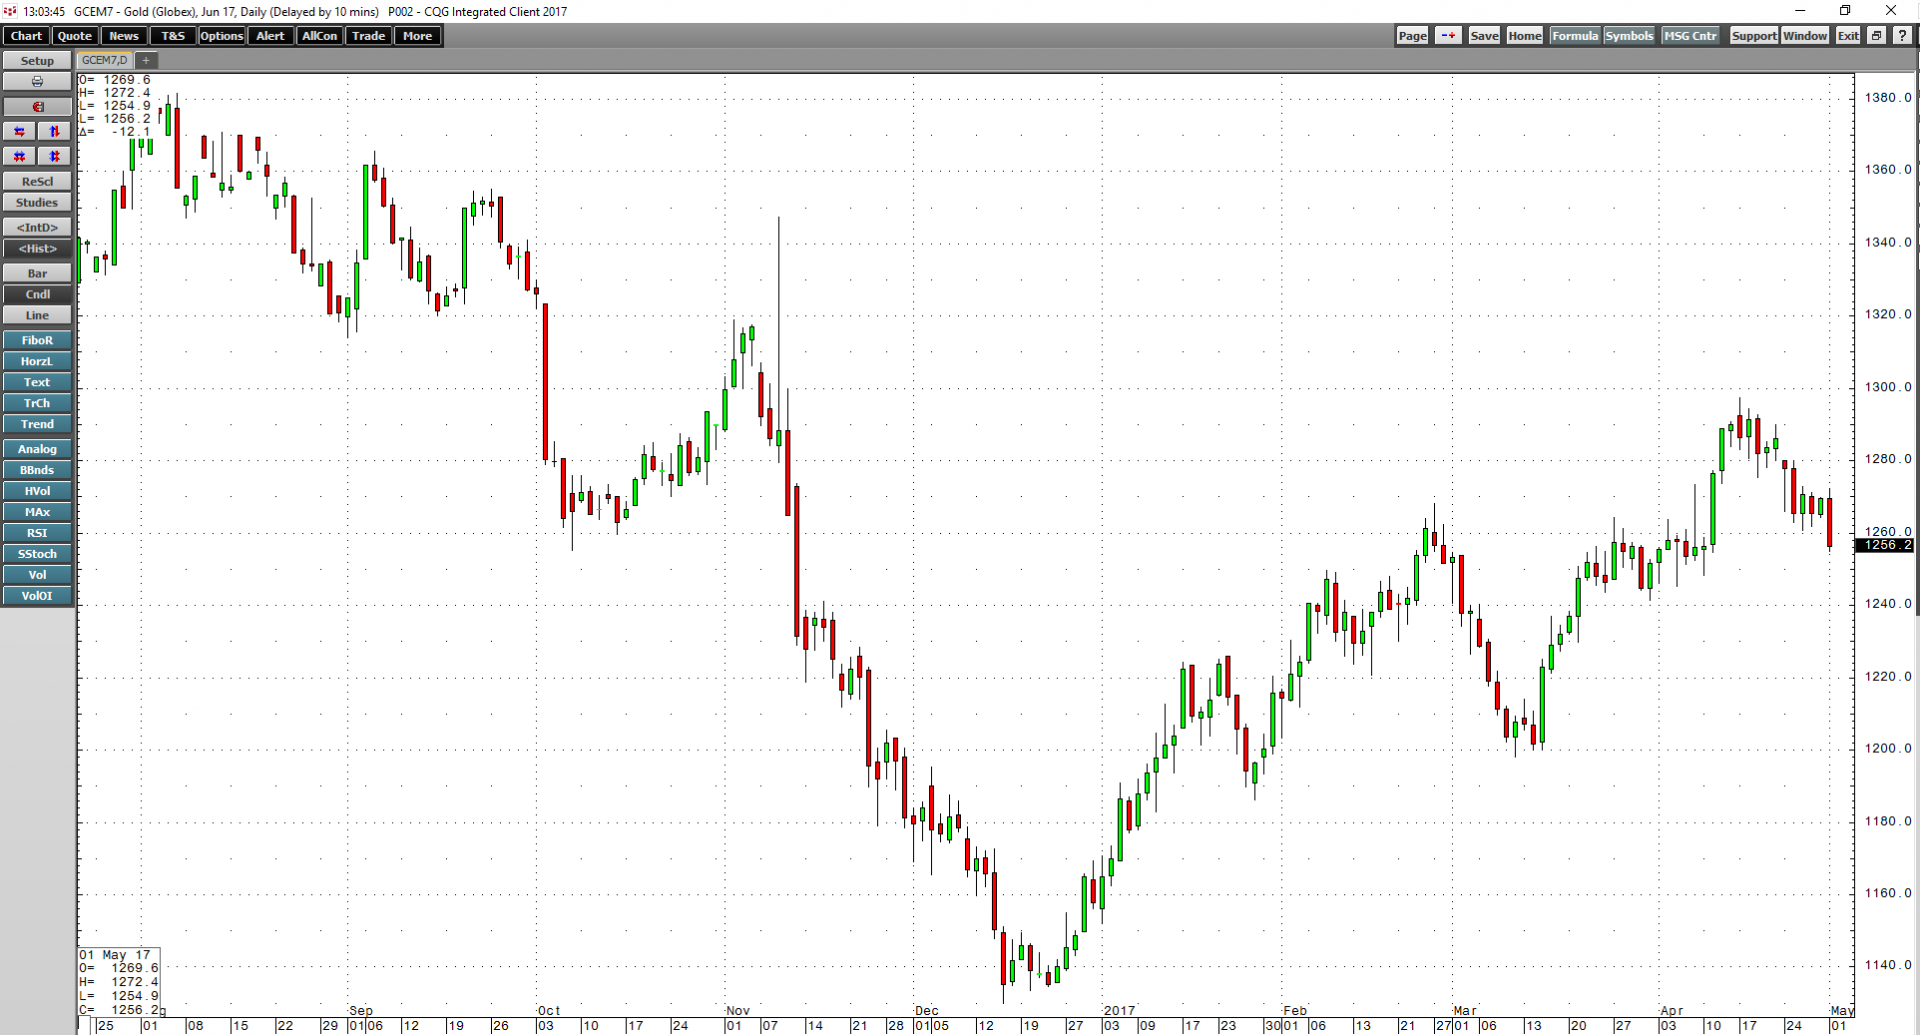 Gold Three Charts Spell Confusion